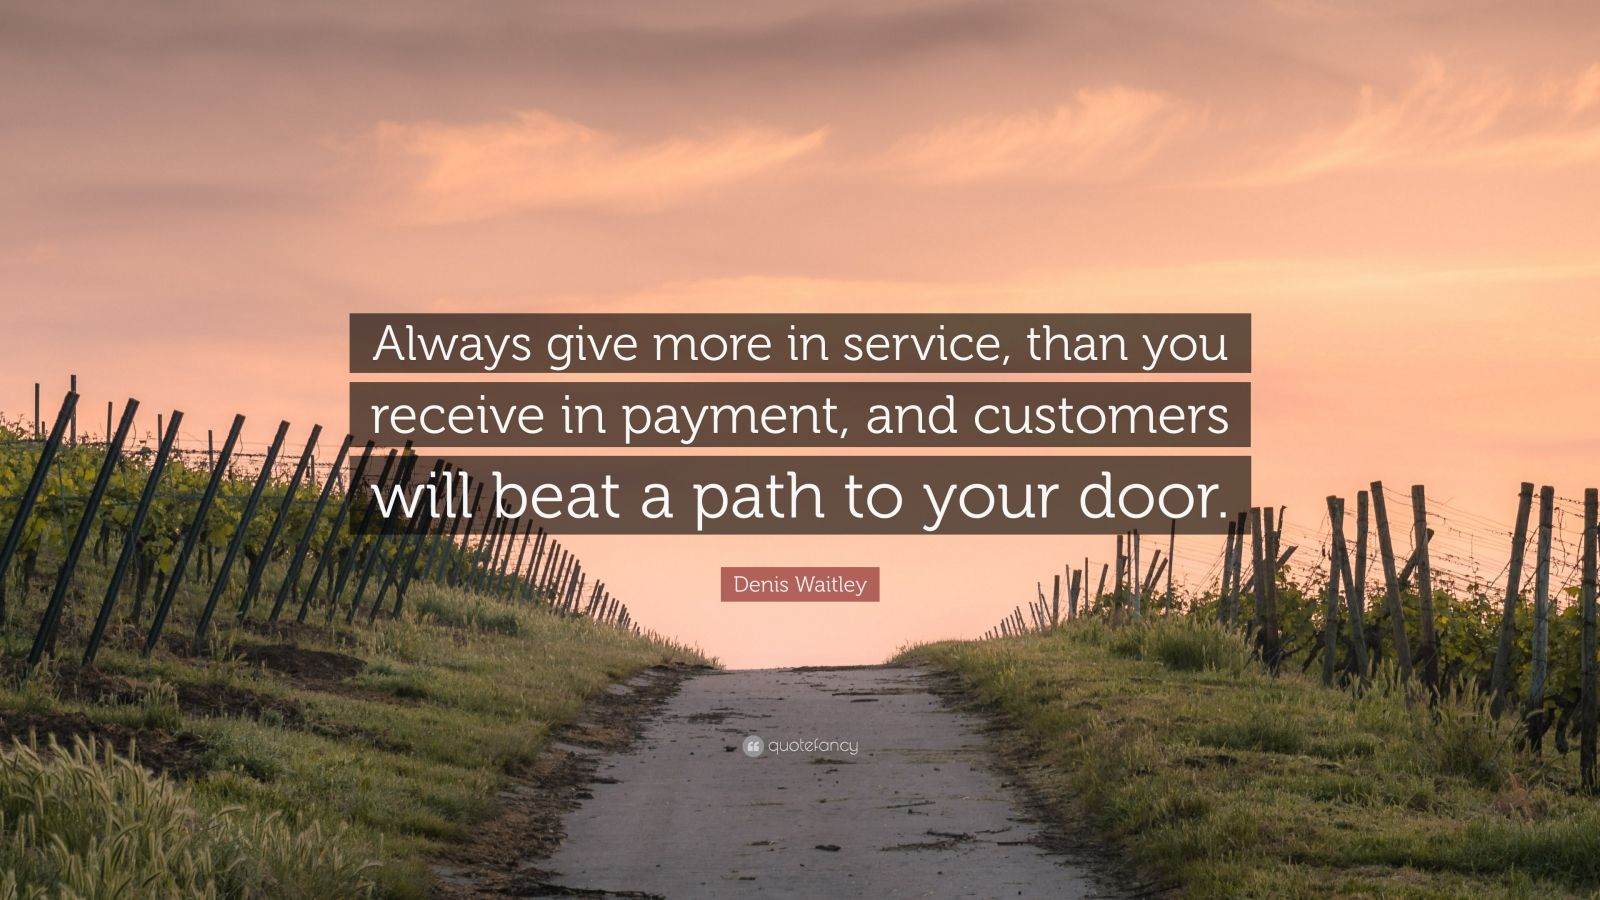 """Denis Waitley Quote: """"Always give more in service, than you receive in payment, and customers will beat a path to your door."""""""